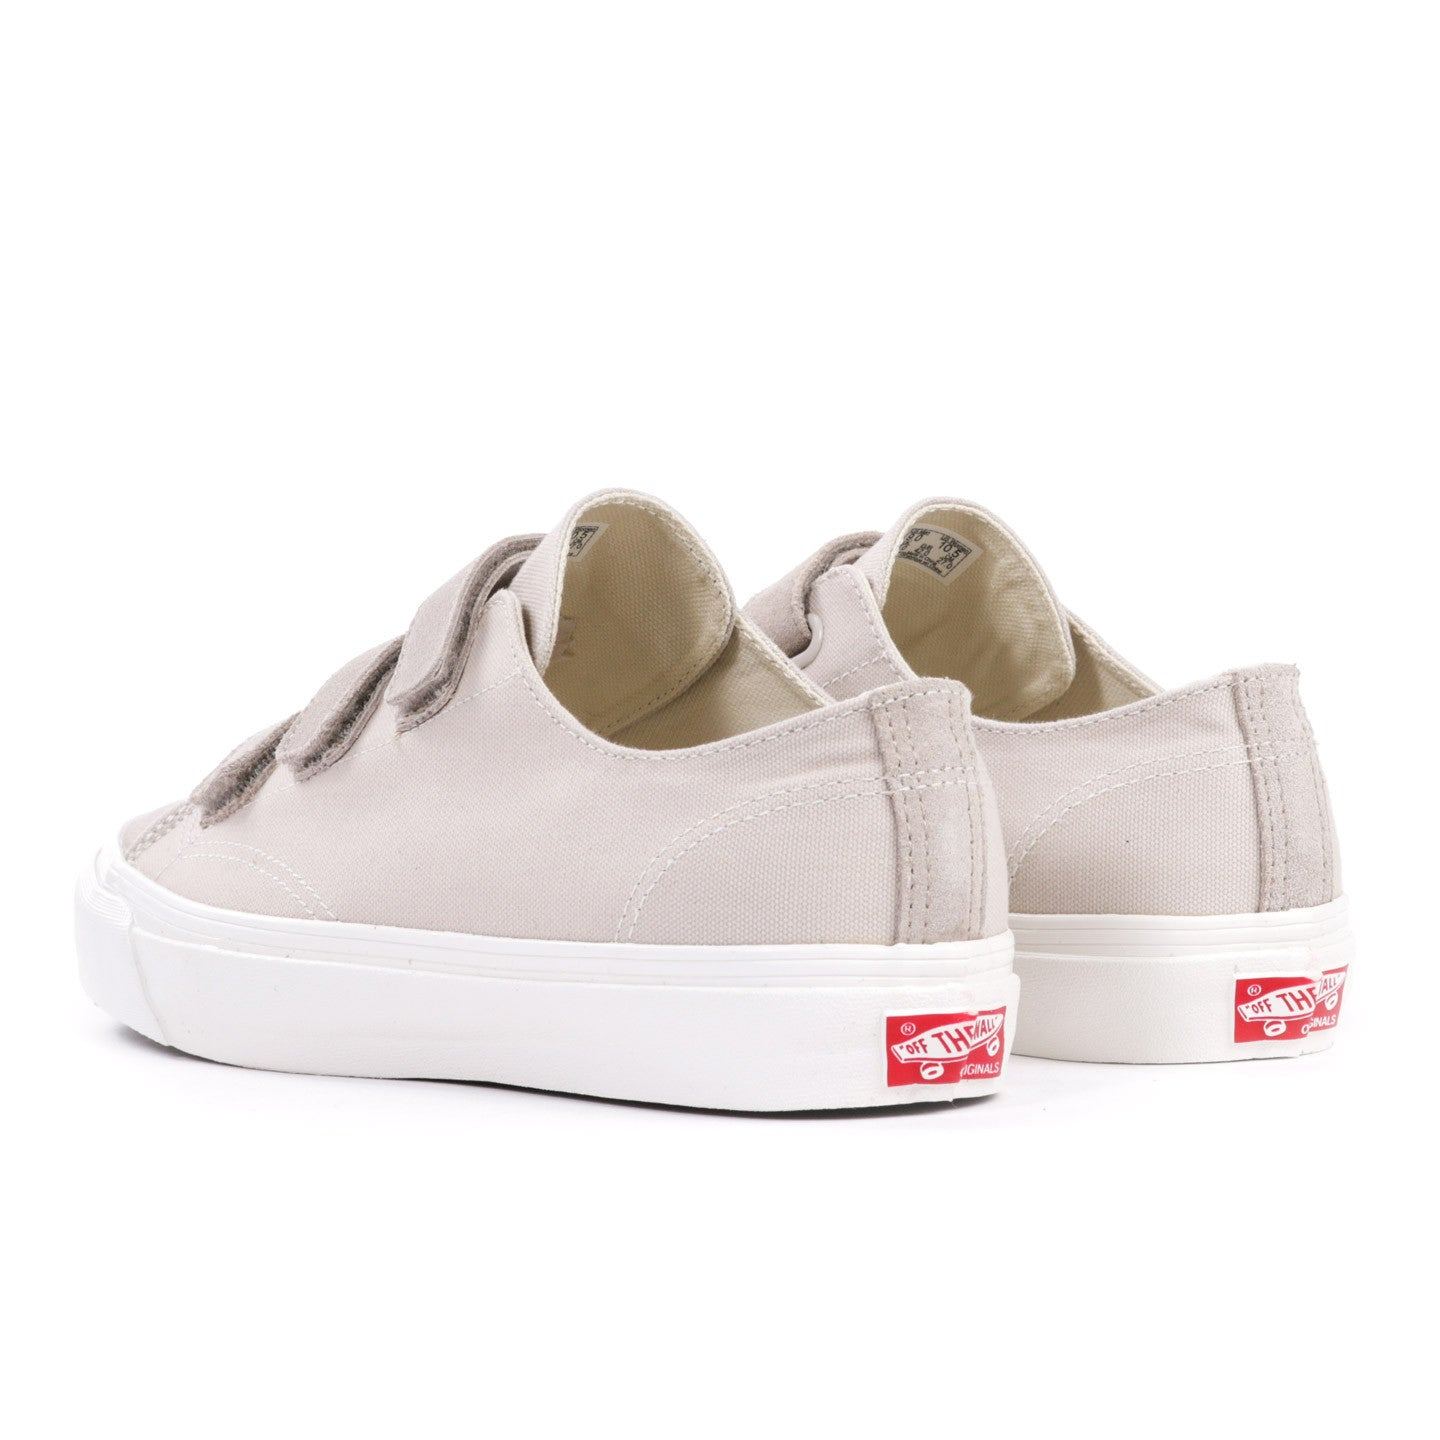 VAULT BY VANS OG STYLE 23 V LX FEATHER GRAY